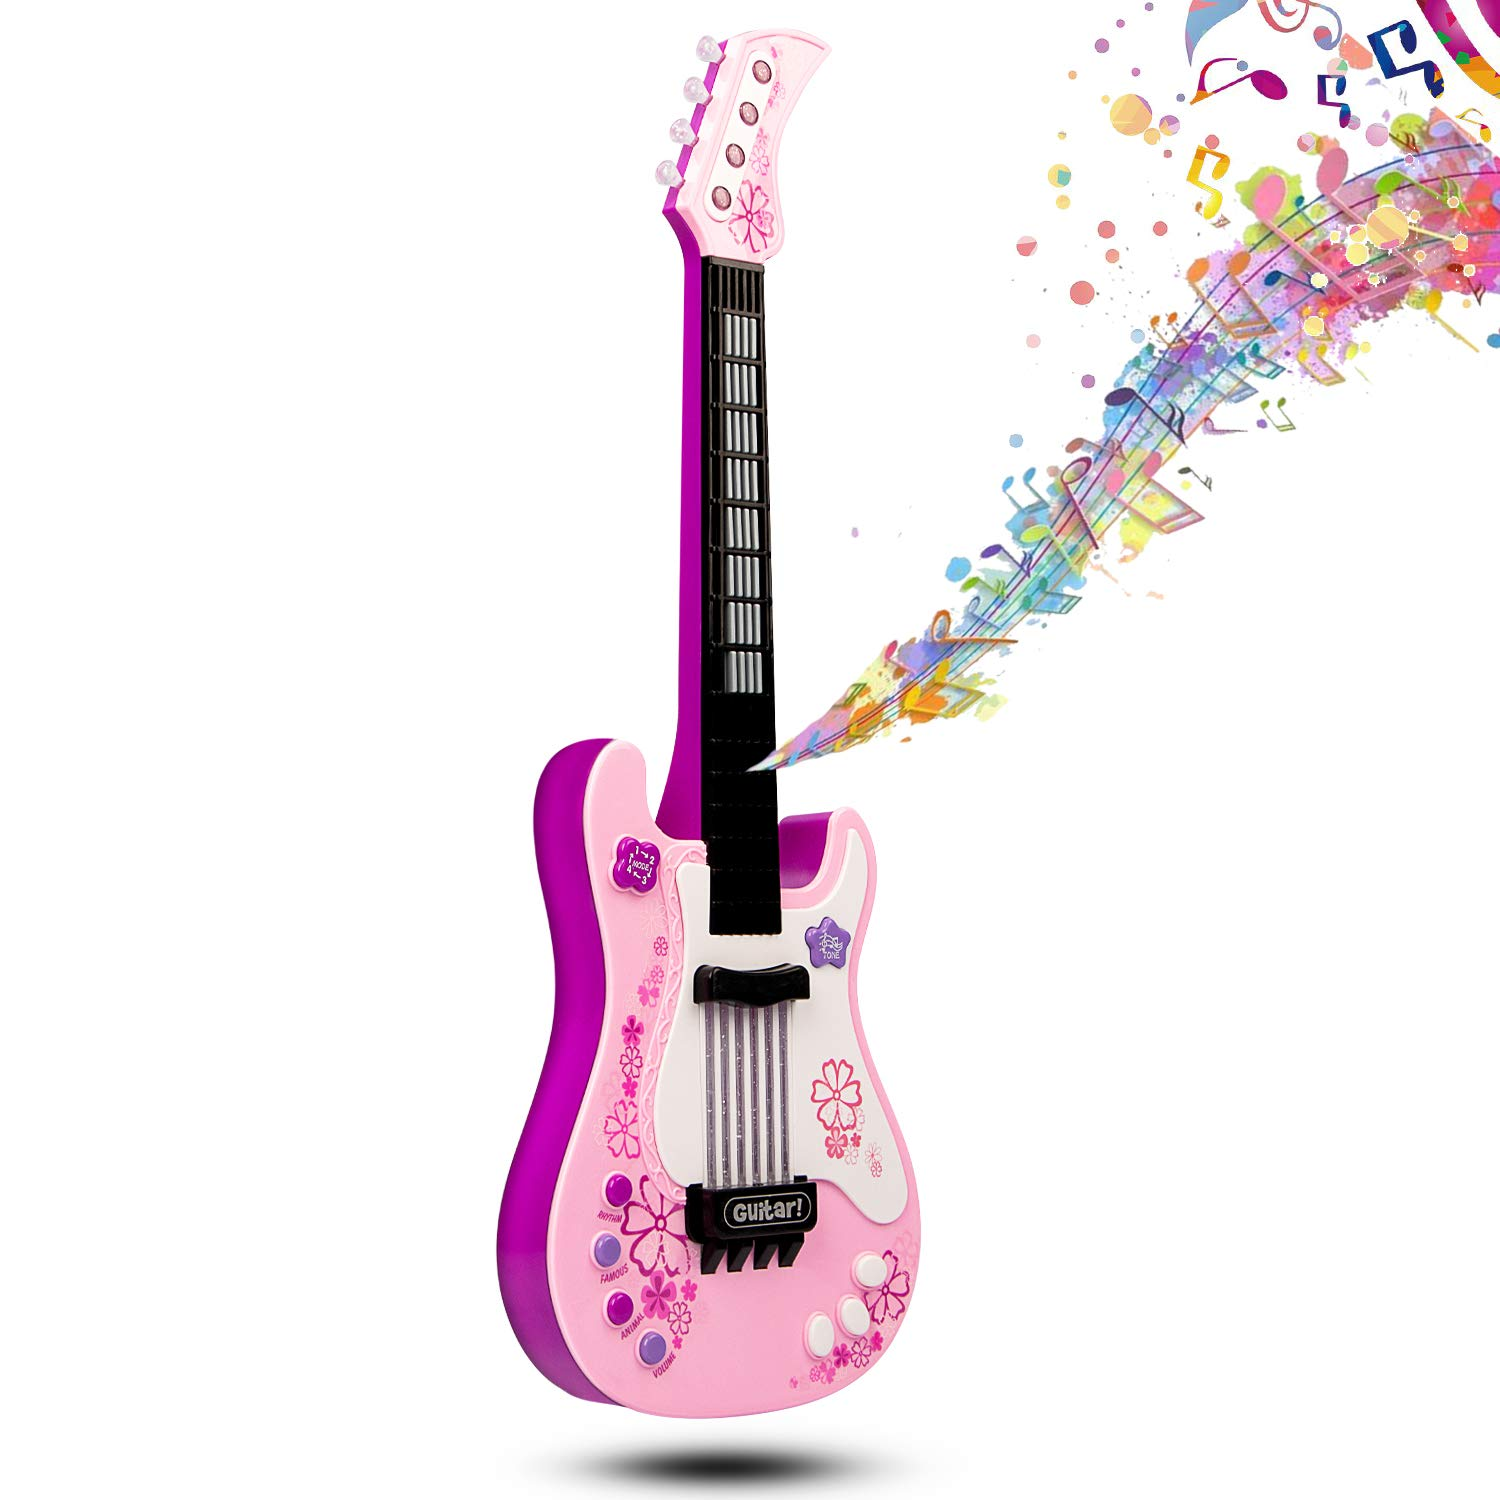 JINRUCHE Toy Guitar for Kids, Electric Guitar with Vibrant Sounds No String Musical Instruments Educational Toy for Children Great for Boys Girls (Pink)